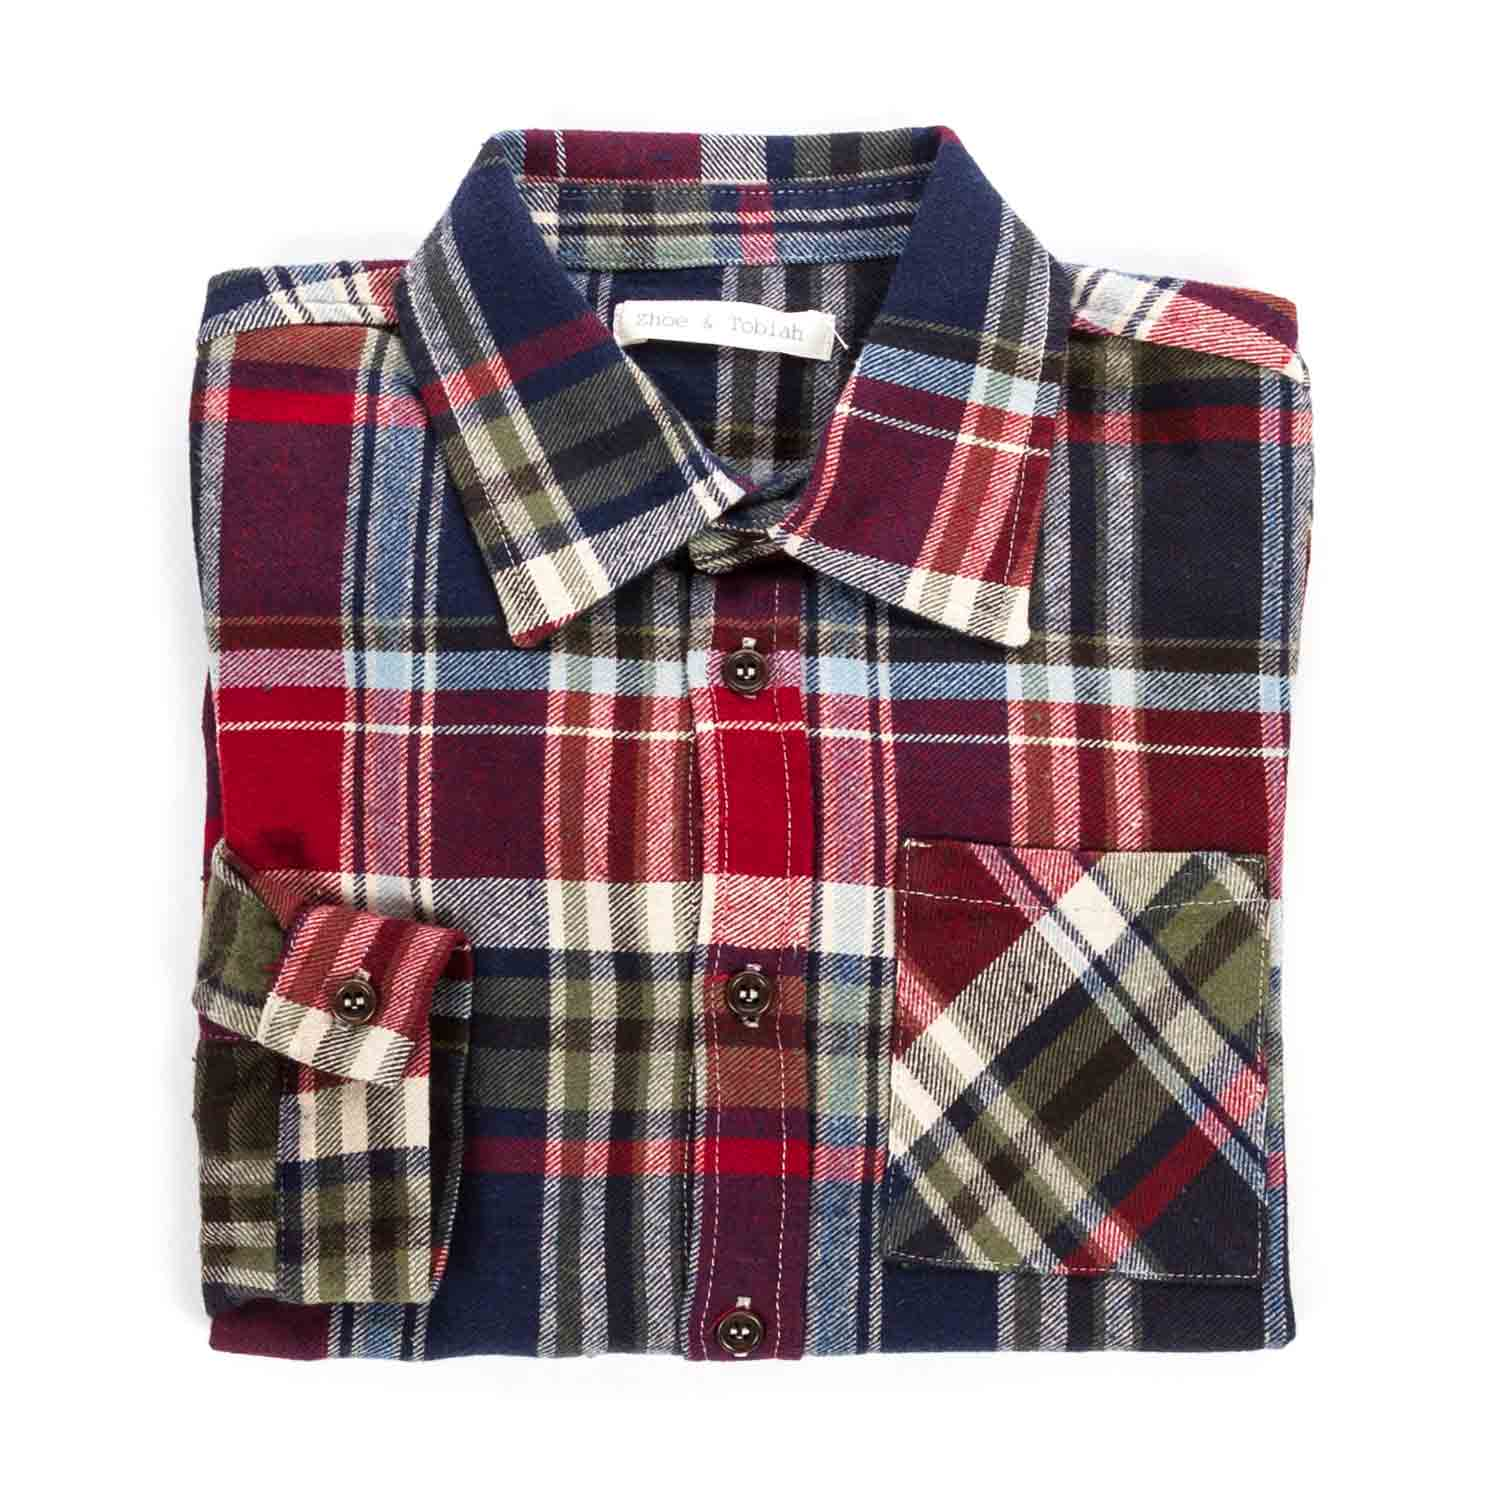 low priced b06f7 fdac9 Camicia A Quadri Per Bambino